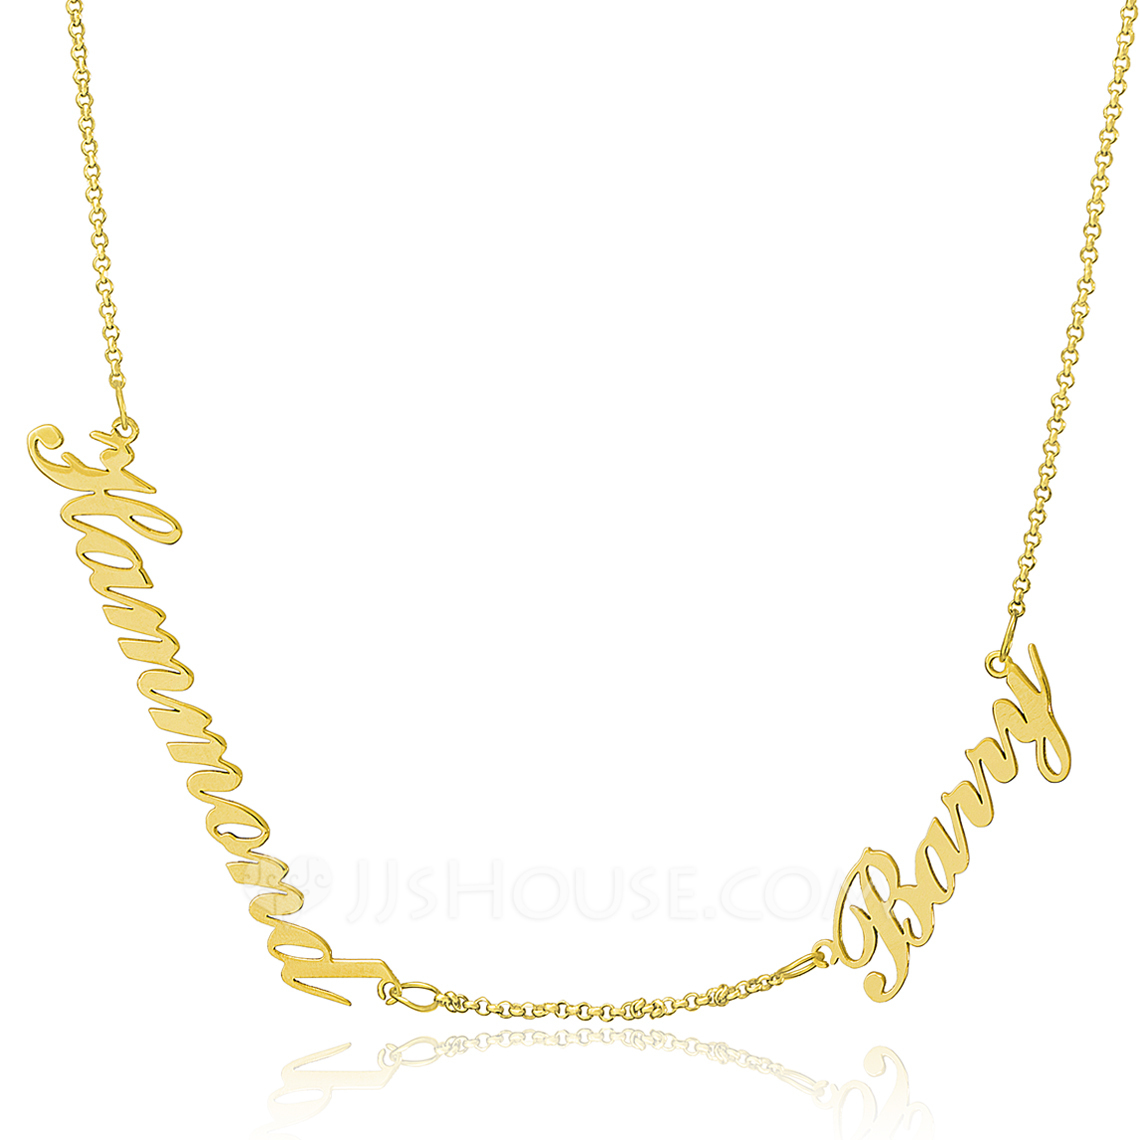 Custom 18k Gold Plated Silver Two Name Necklace - Birthday Gifts Mother's Day Gifts